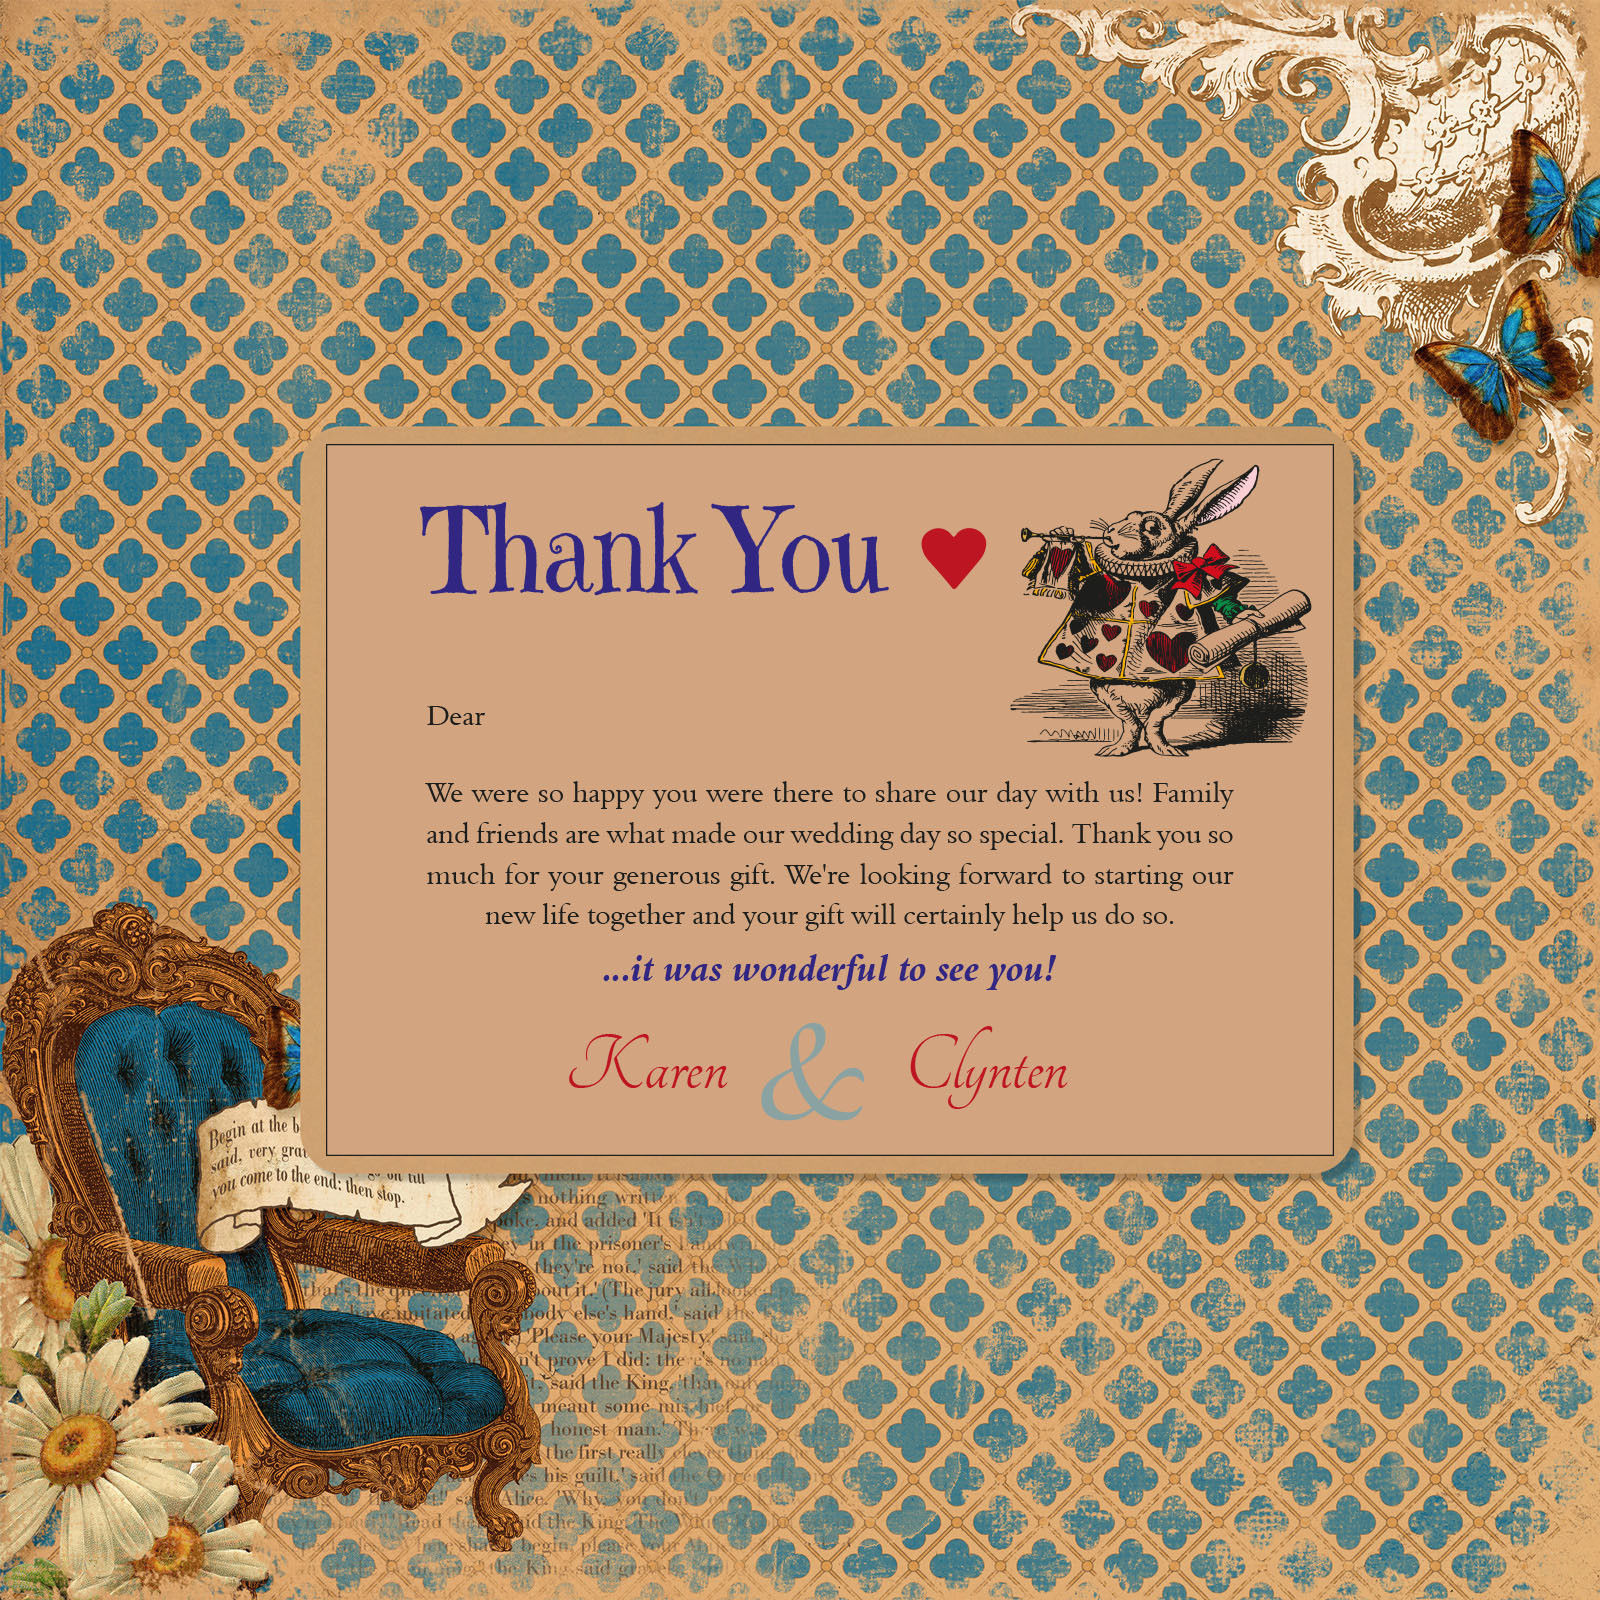 Vintage Alice on Buff Card - Thank You Cards